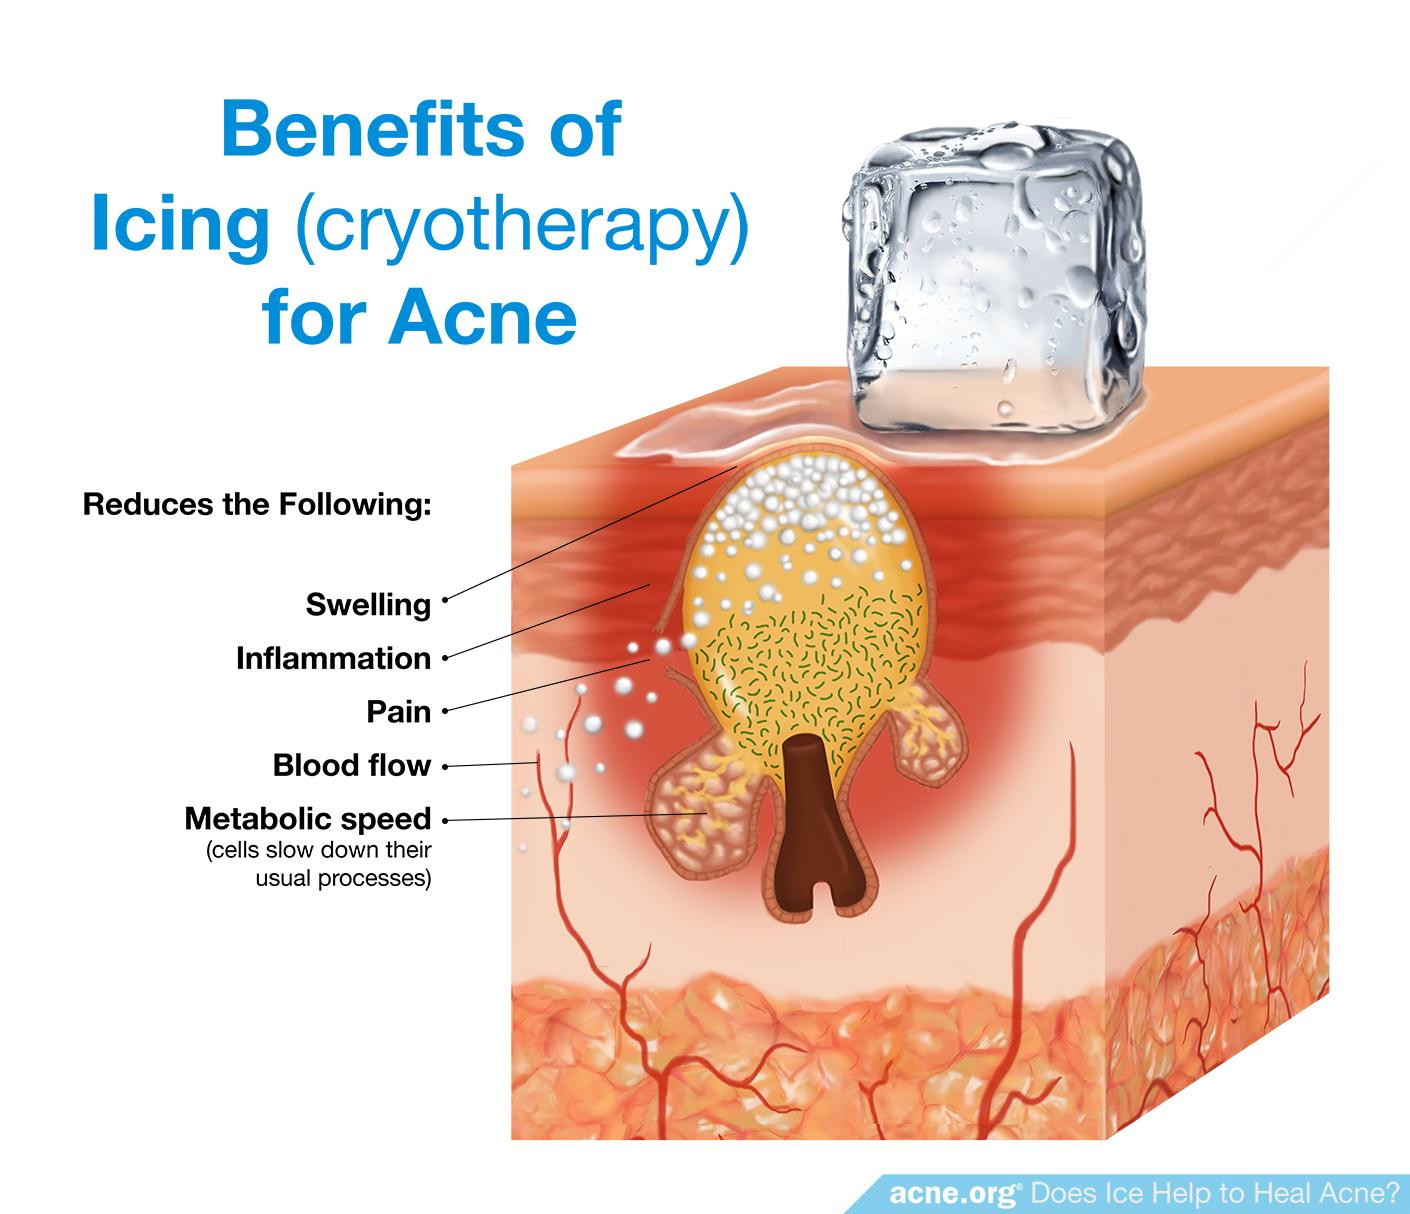 Benefits of Icing (Cryotherapy) for Acne